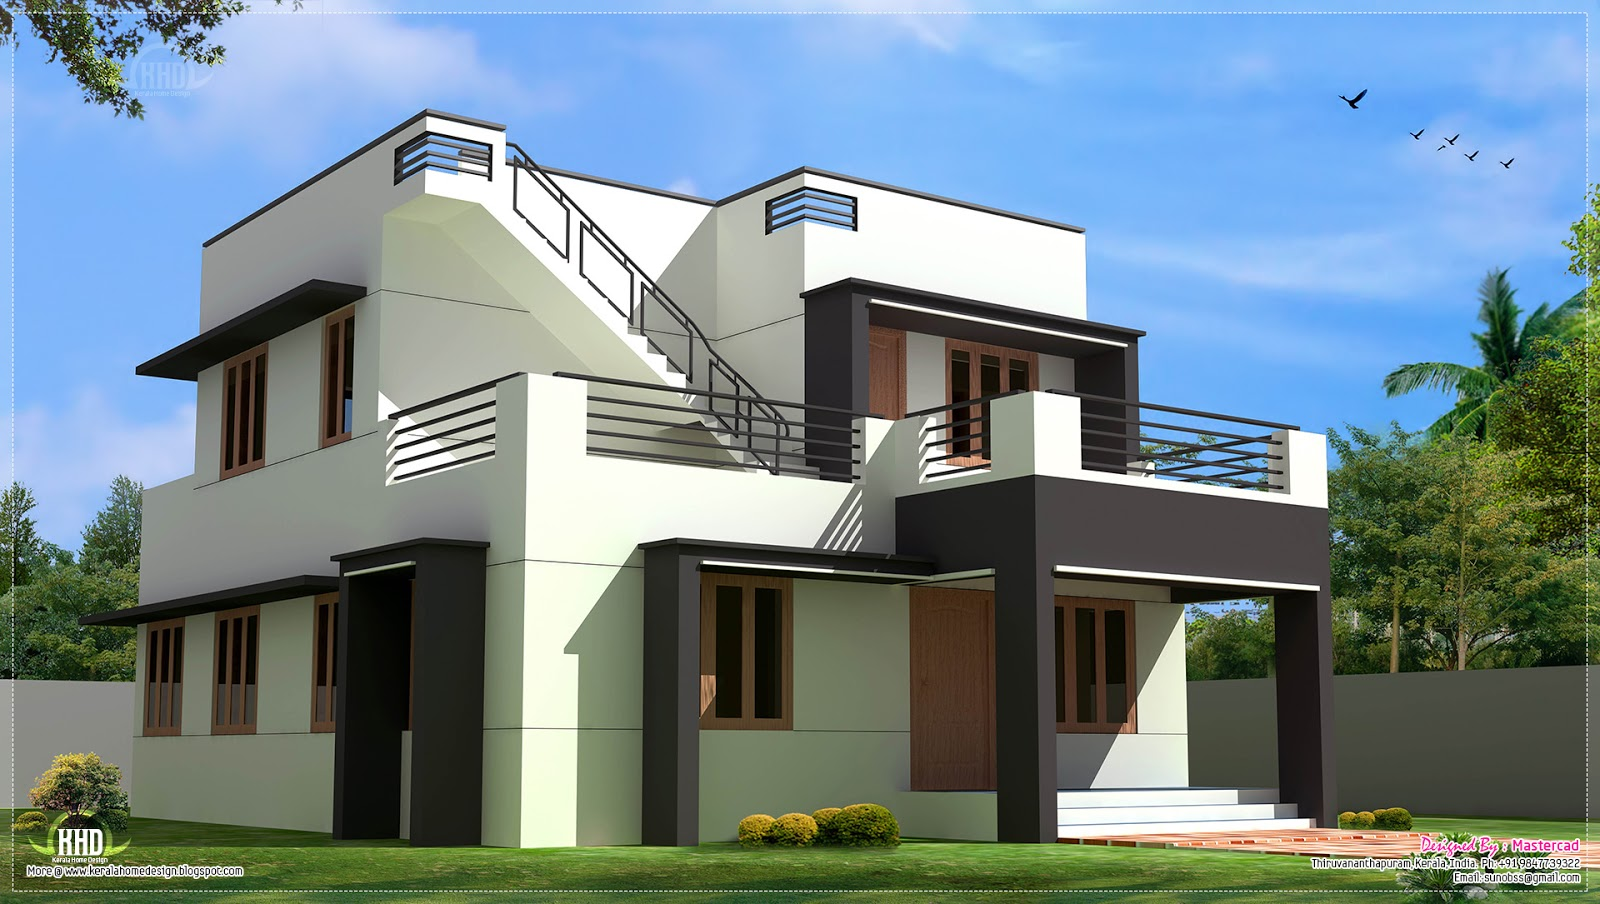 Modern house design in 1700 kerala home design for Modern house plans 2015